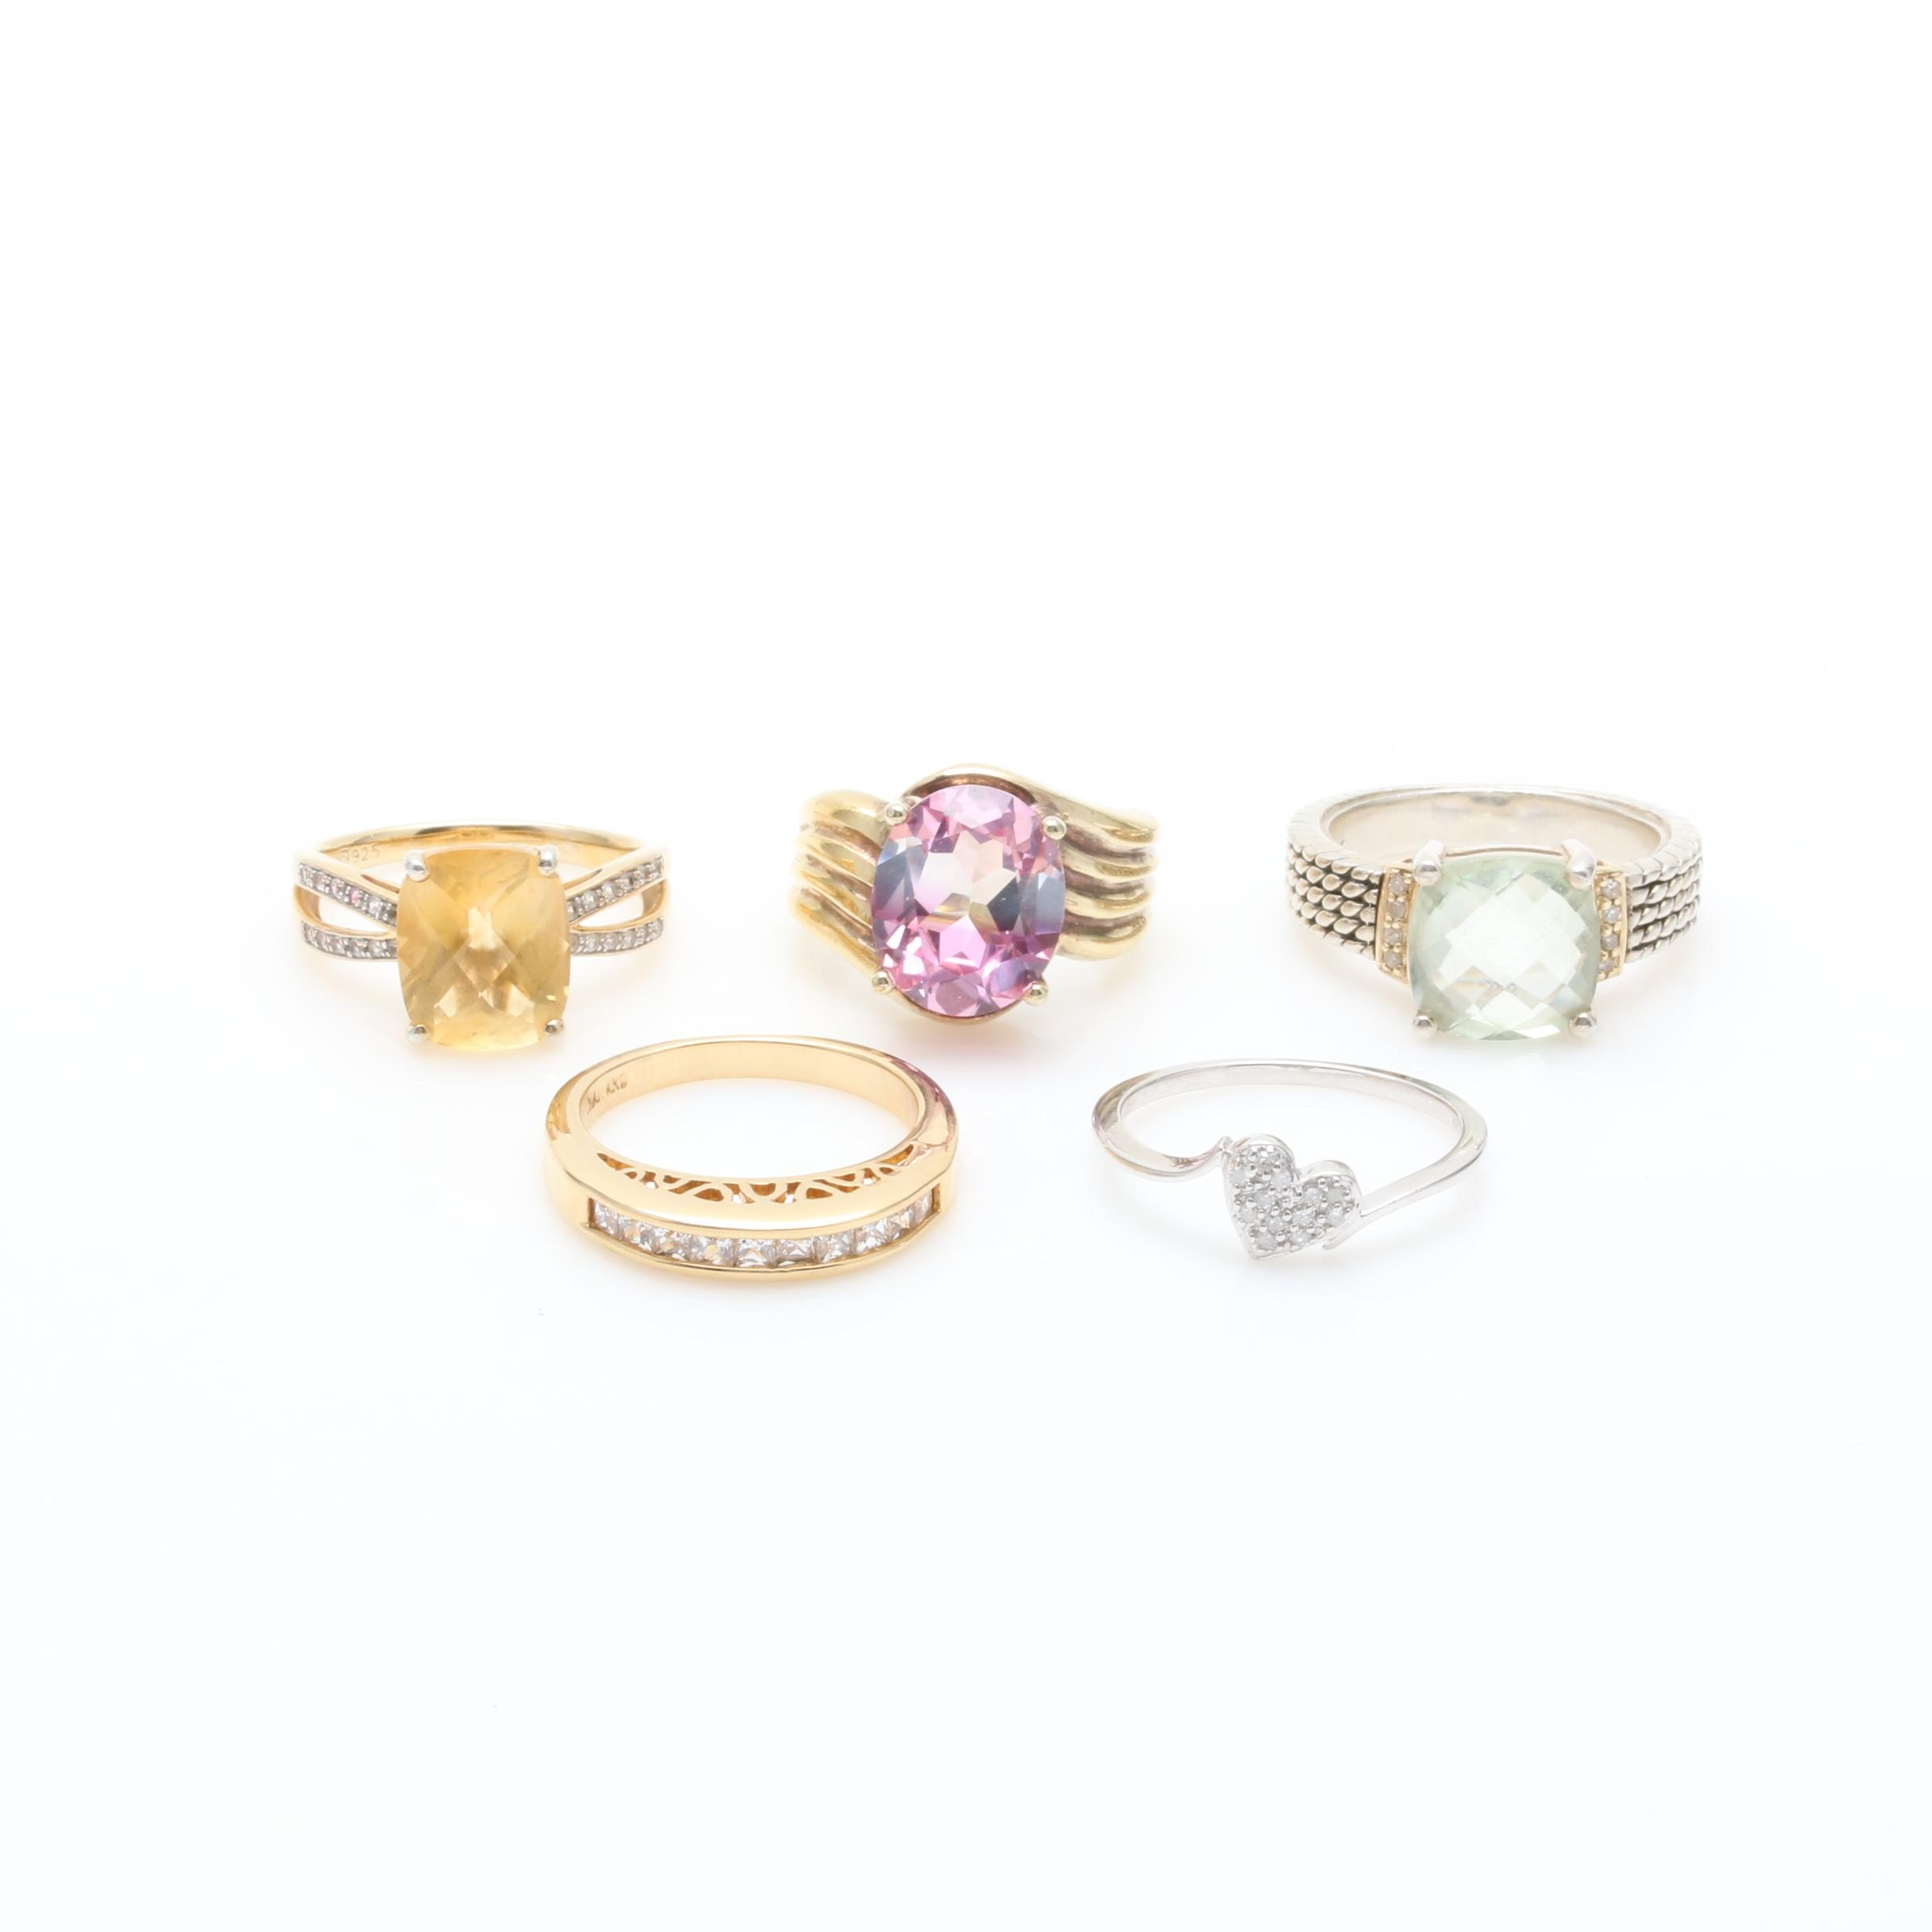 Gold Wash on Sterling Silver Gemstone and Diamond Ring Selection